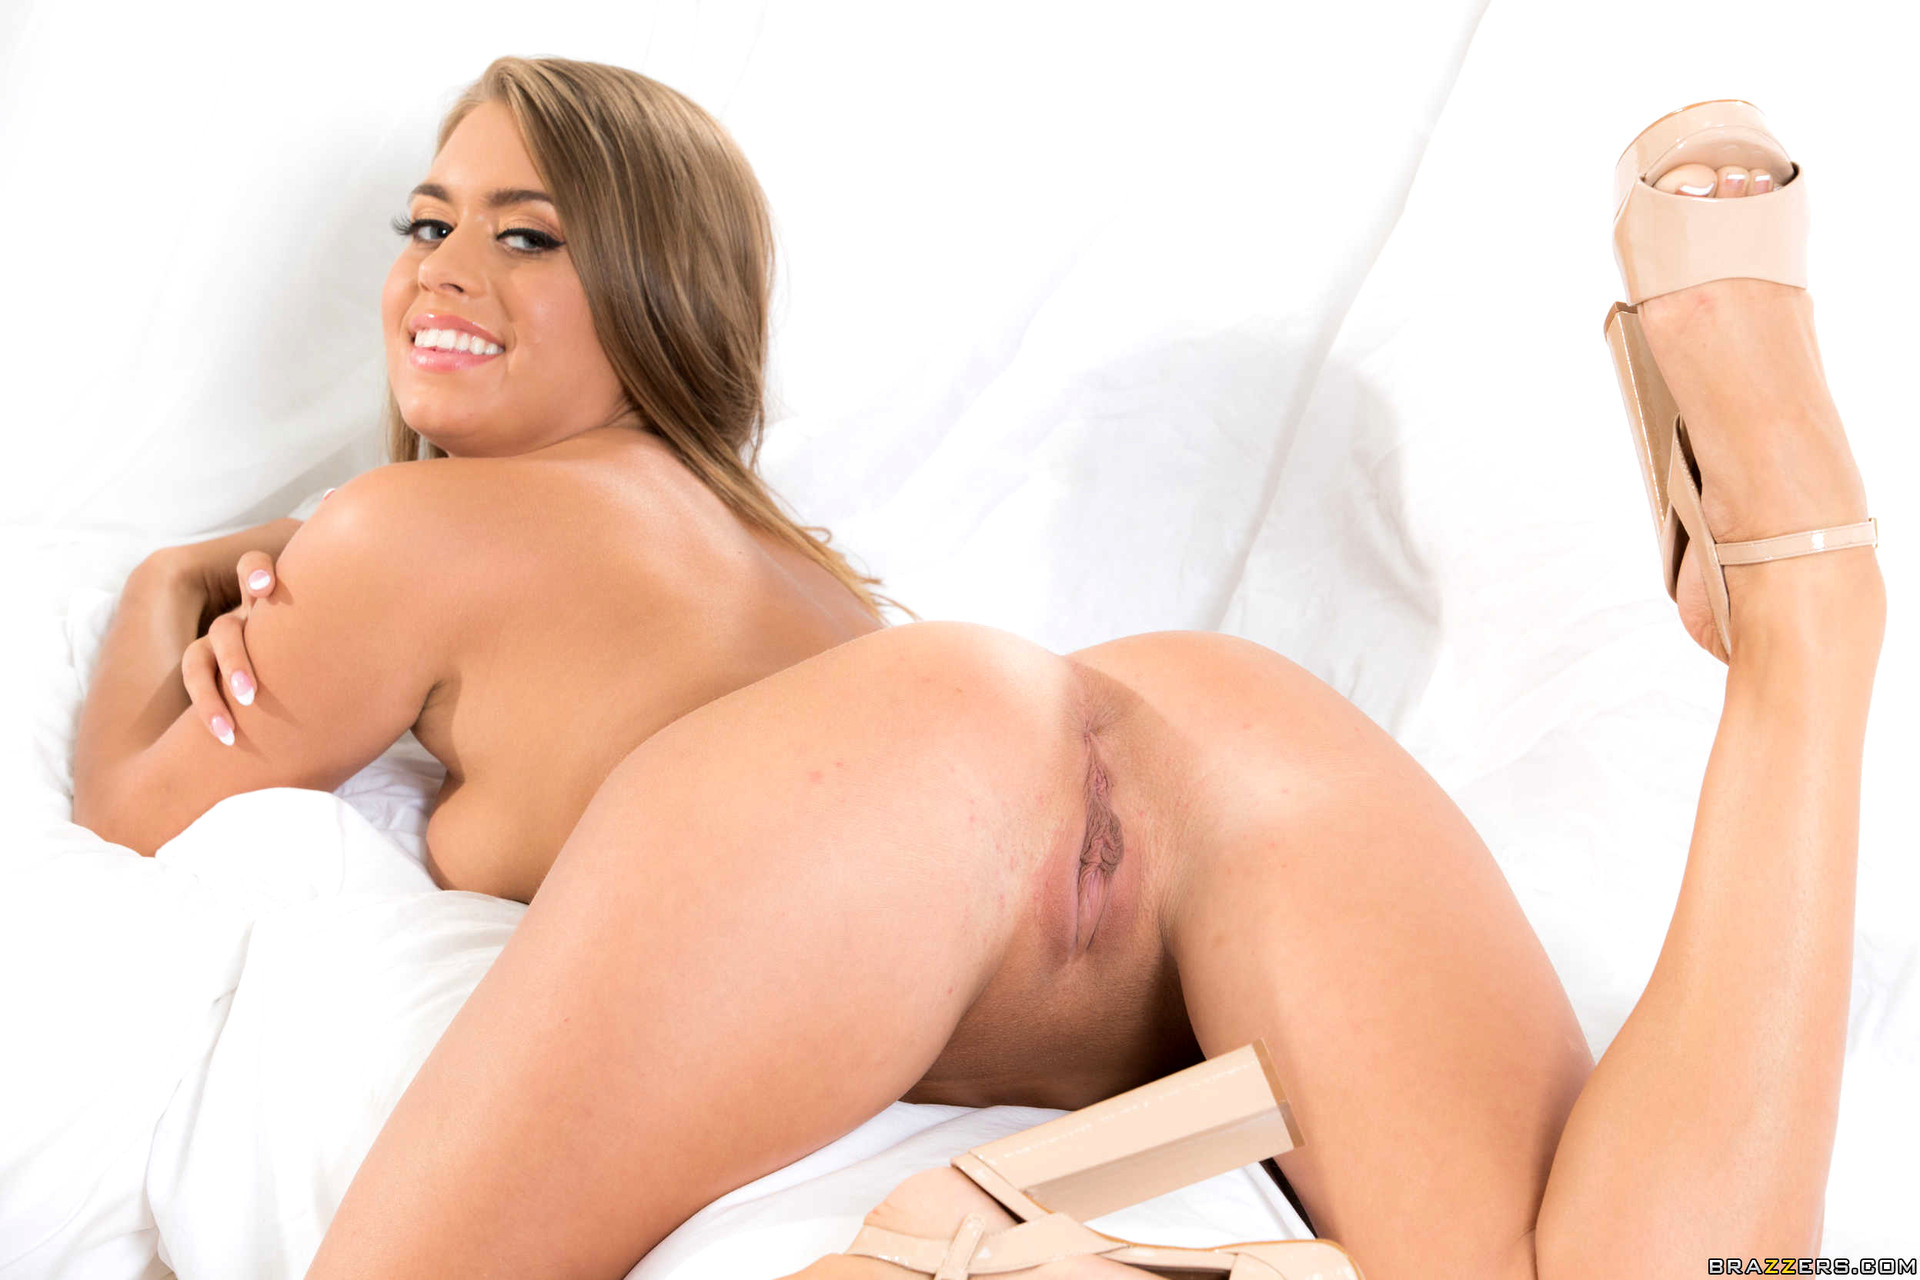 monkey and girl sex com